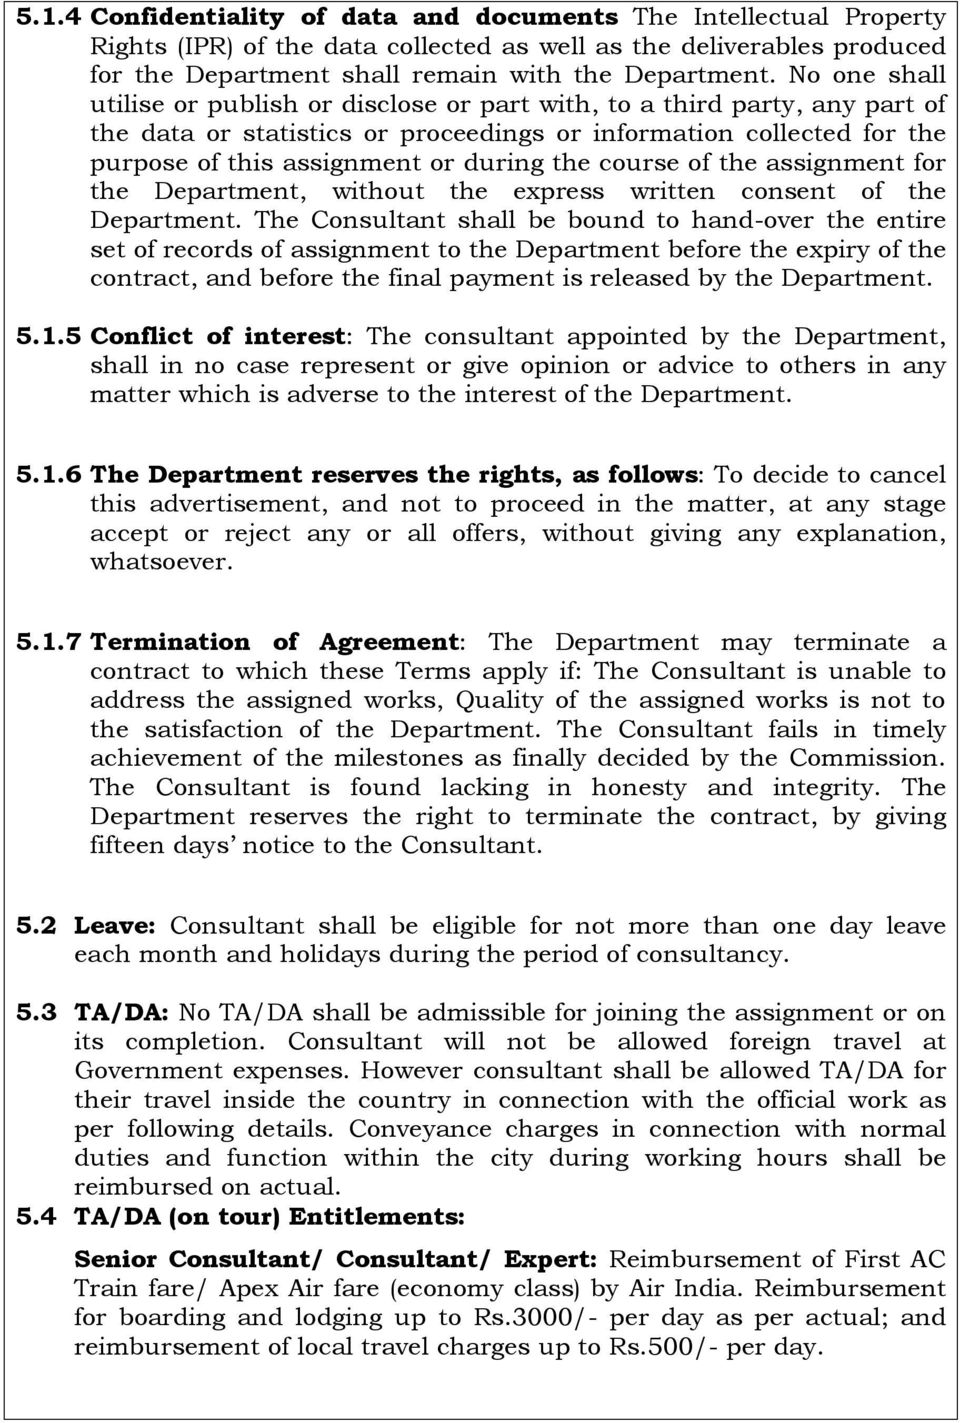 course of the assignment for the Department, without the express written consent of the Department.